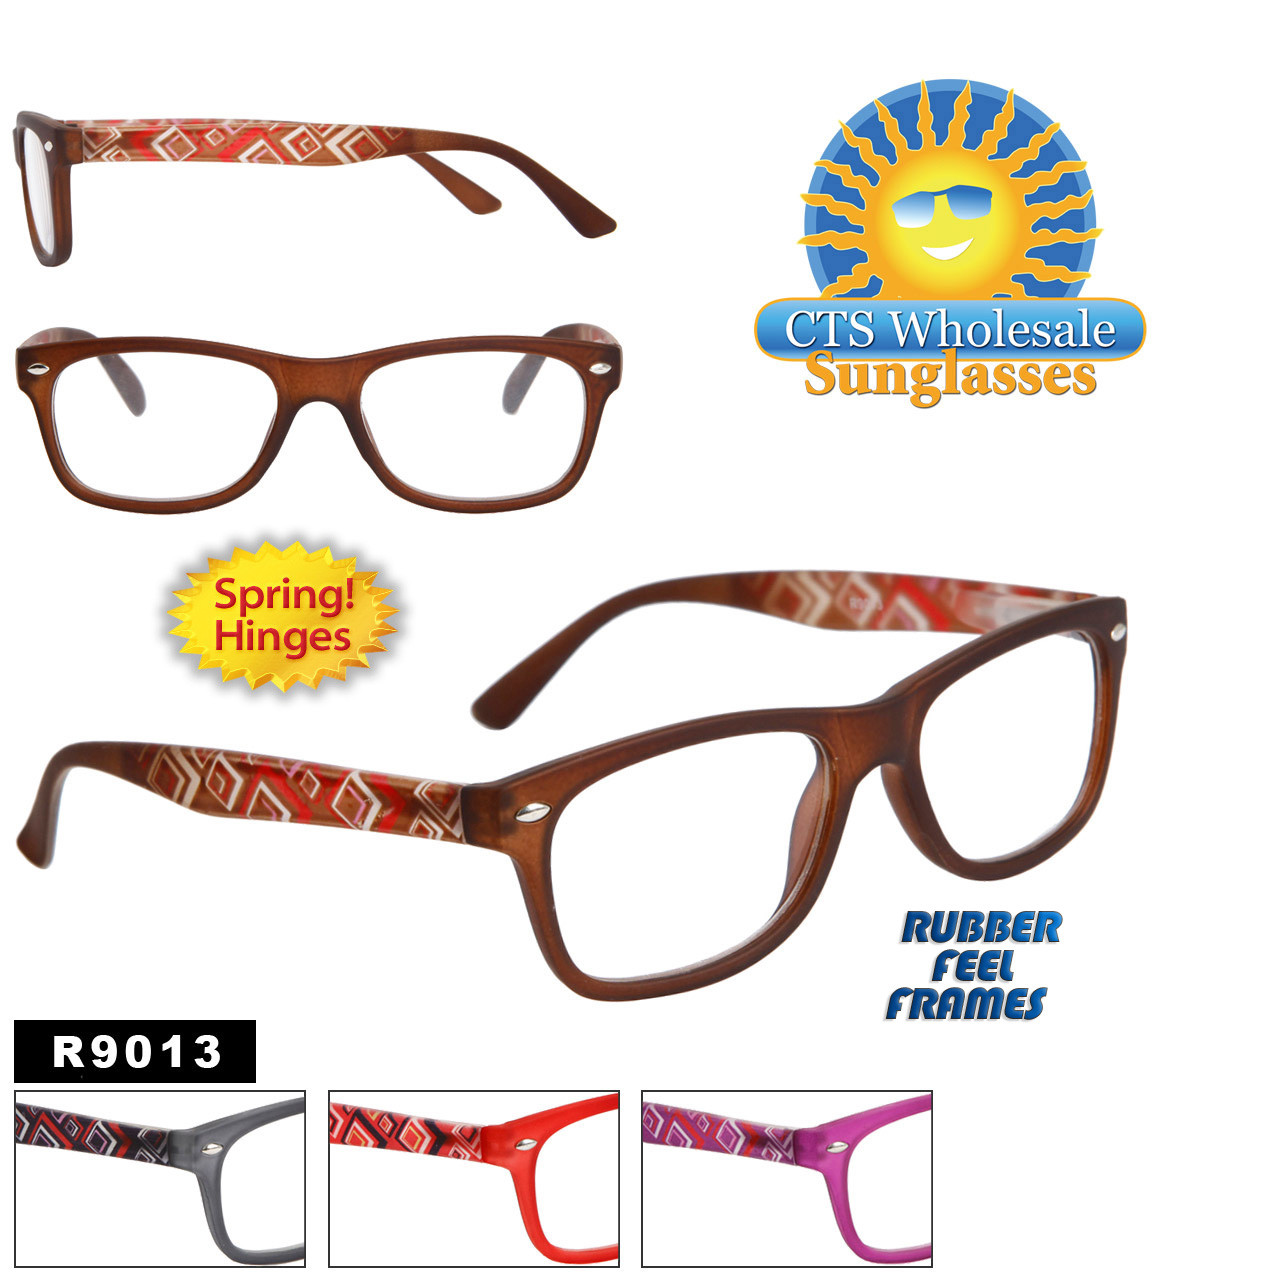 Wholesale Reading Glasses with Rubber Feel Frames R9013